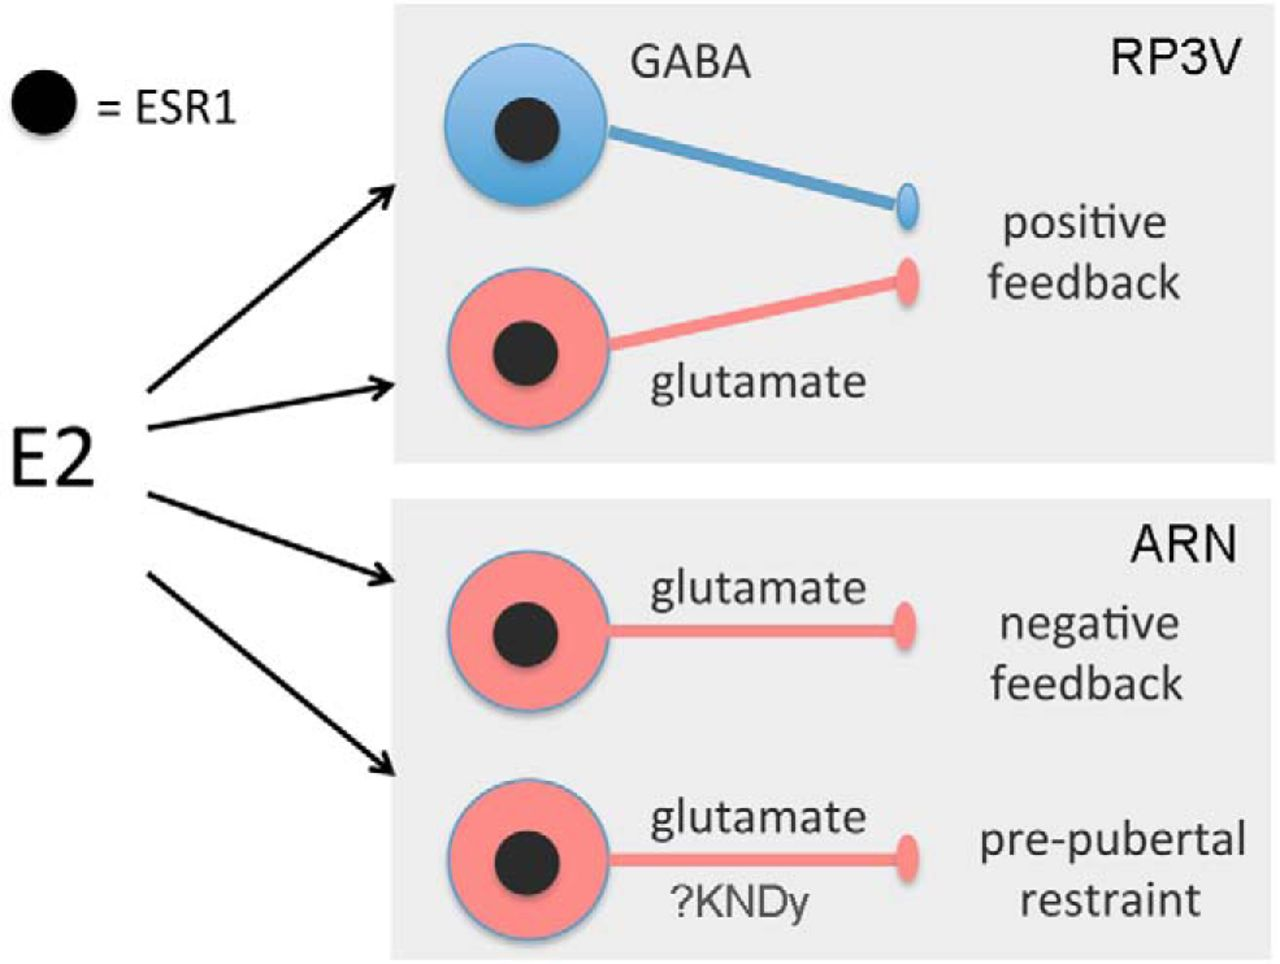 Expression Of Esr1 In Glutamatergic And Gabaergic Neurons Is Negative Feedback Schematic Download Figure